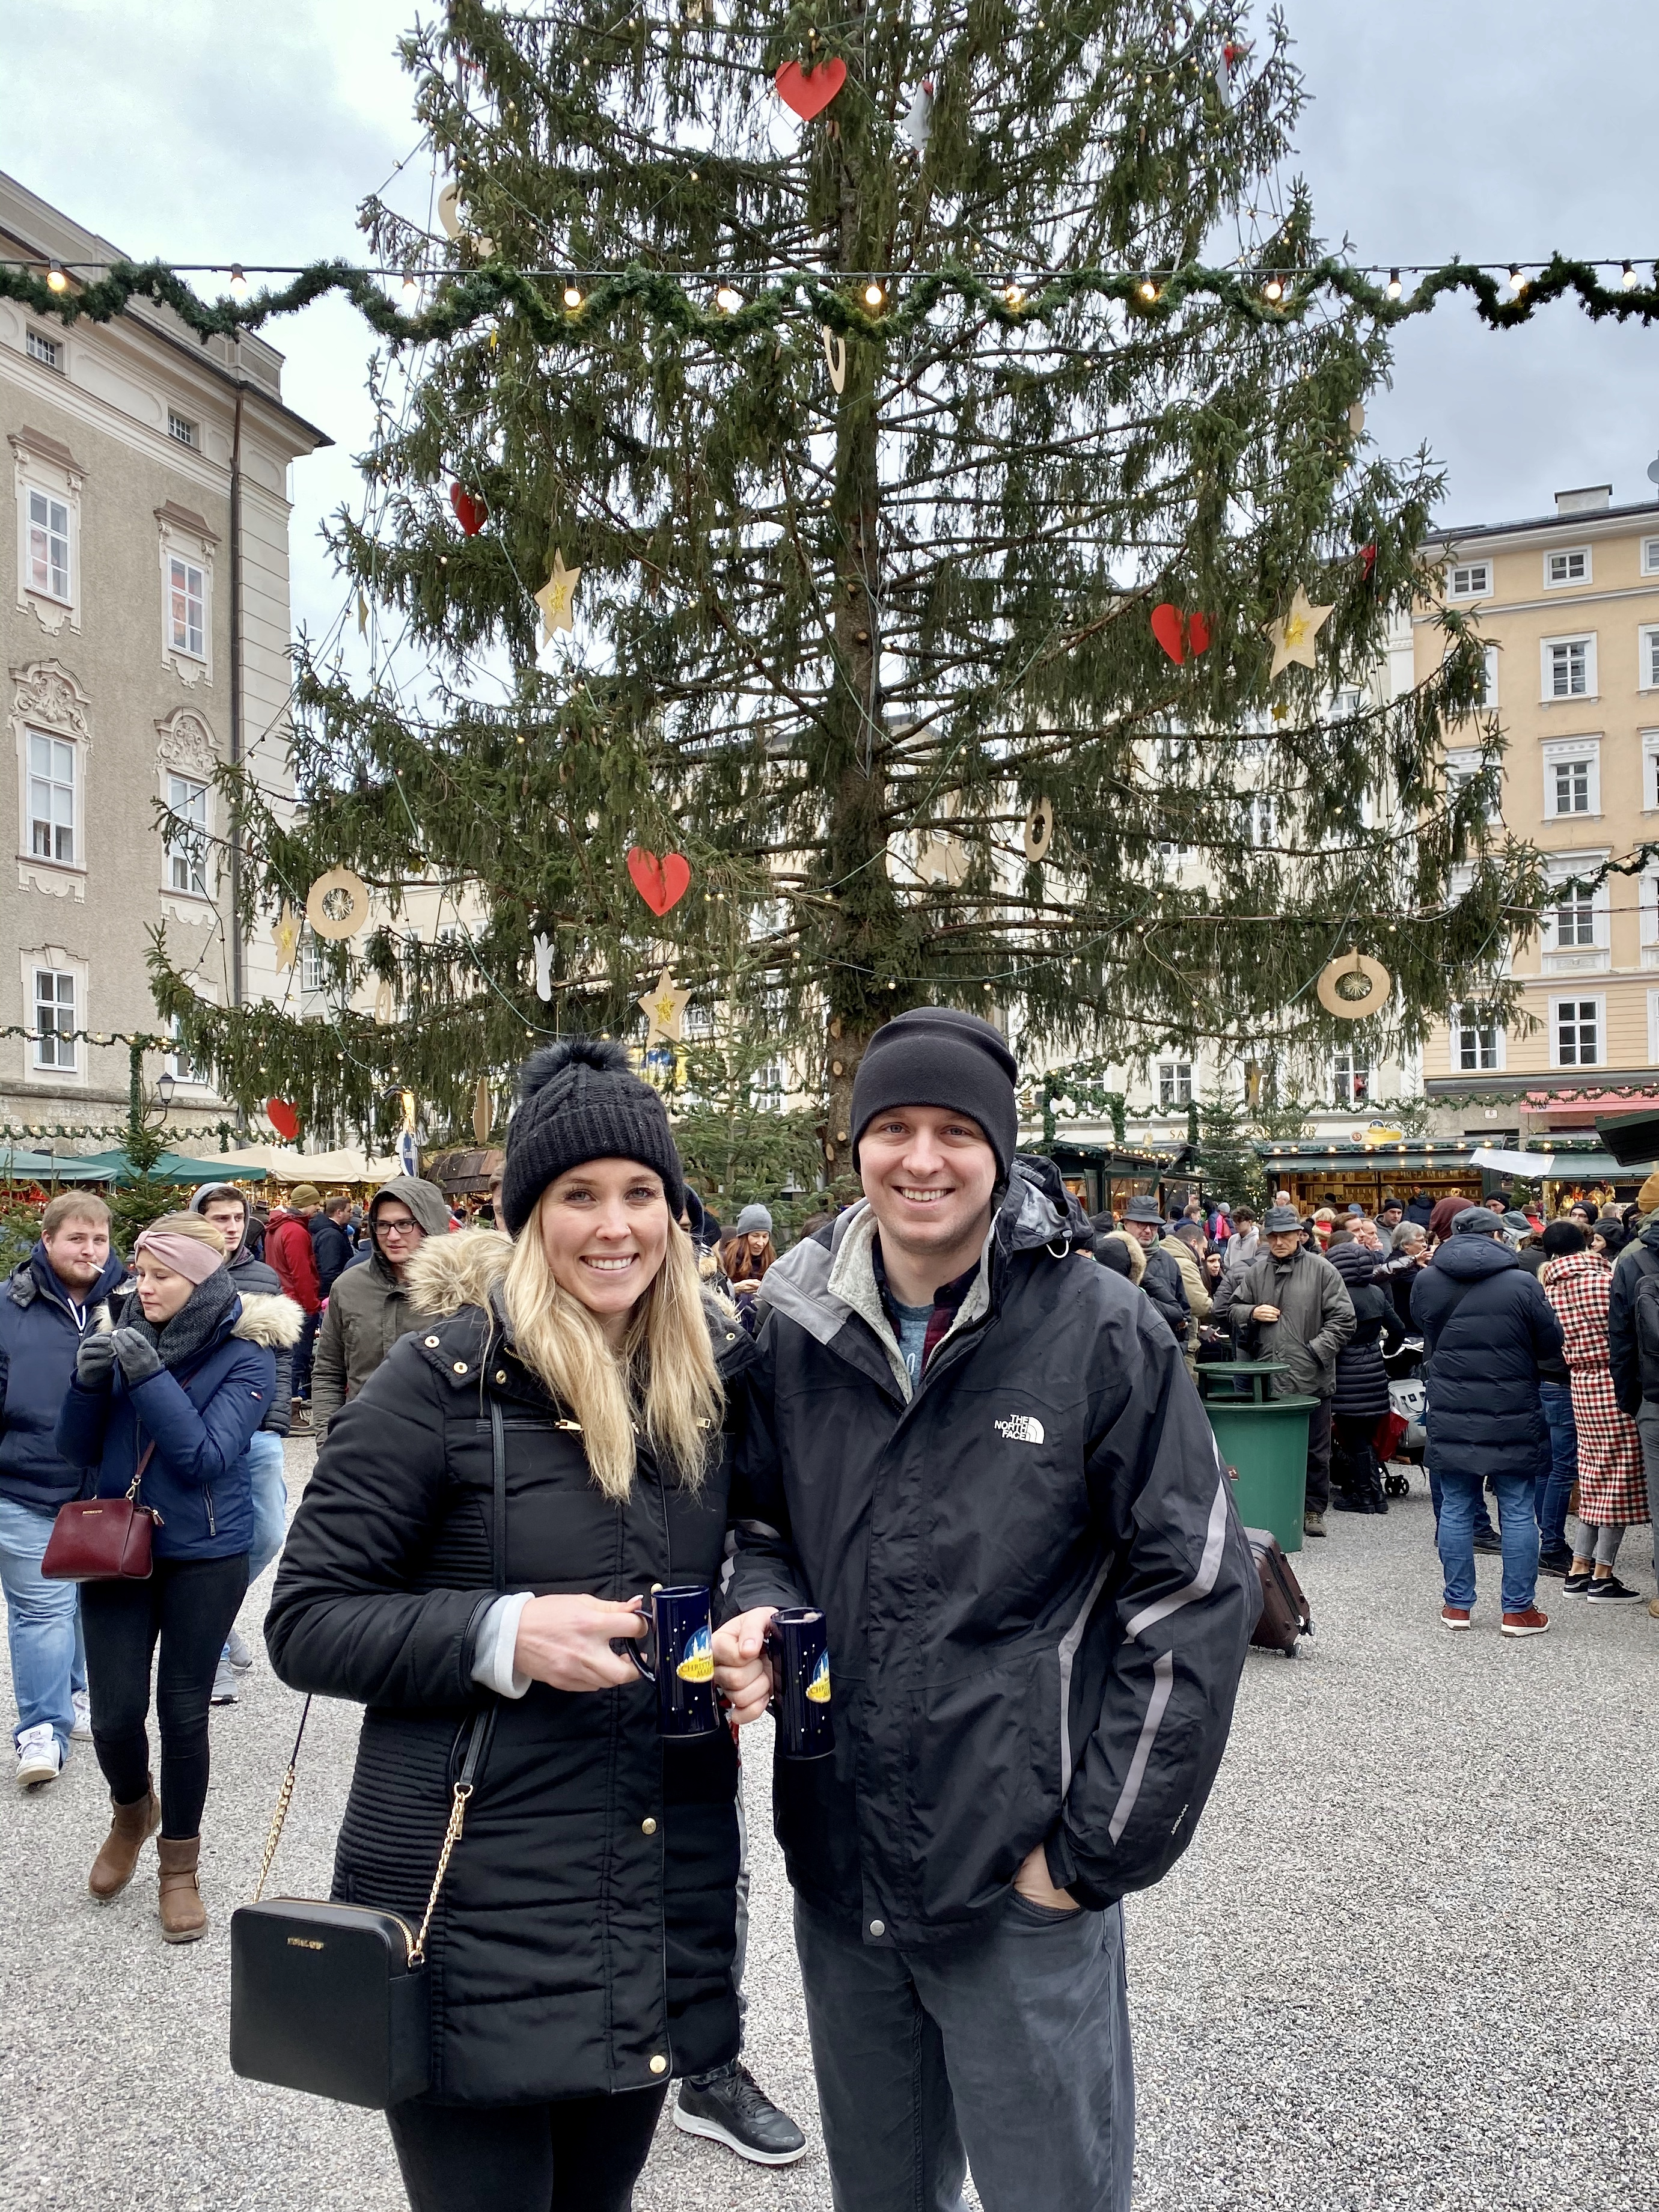 Erinn and Ben in front of a Christmas tree at Salzburg Christmas Market.